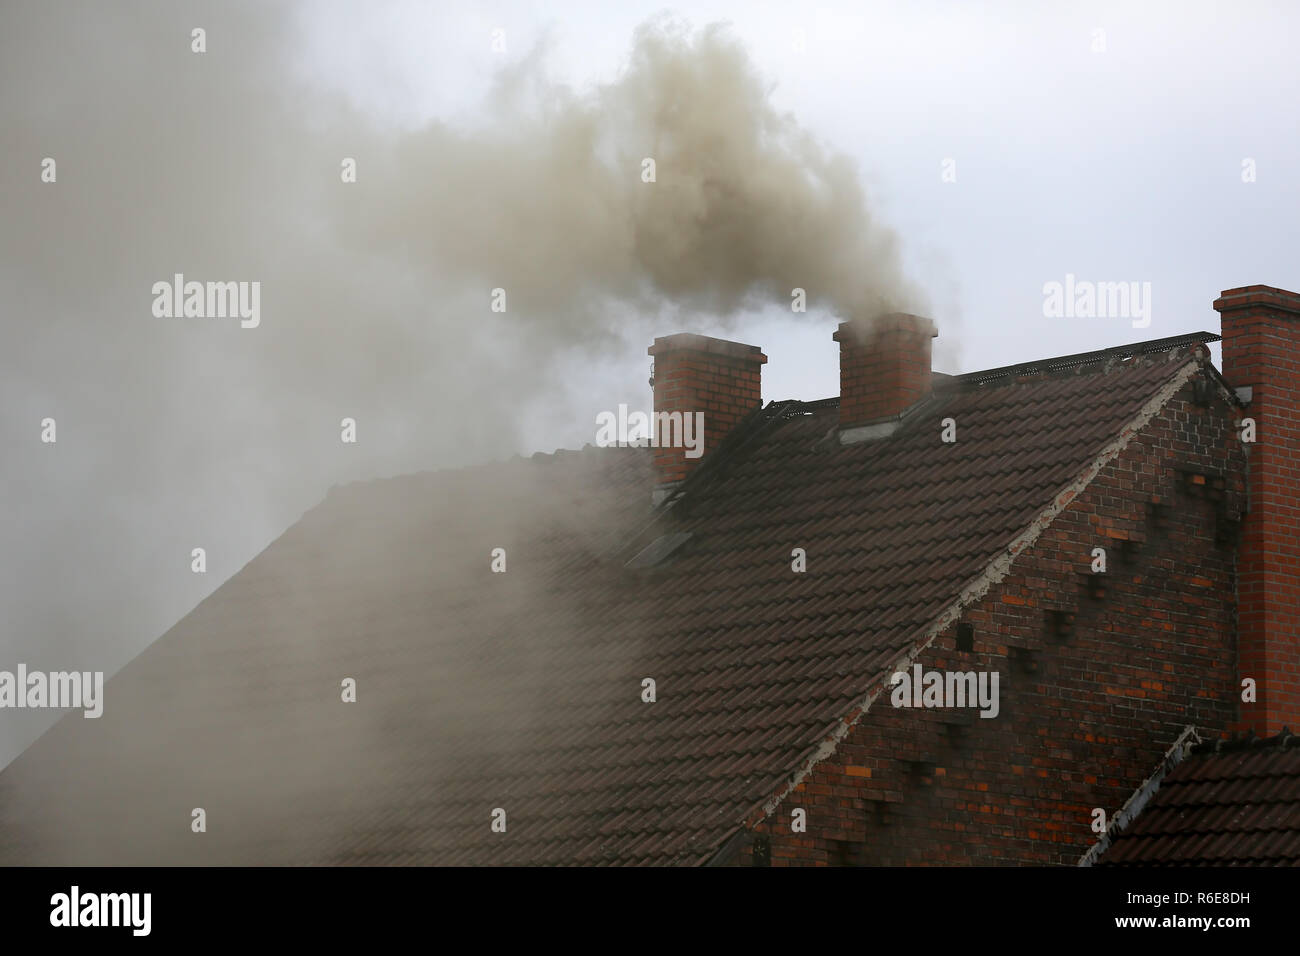 Smoke from the chimney of a house fueled with coal - Stock Image